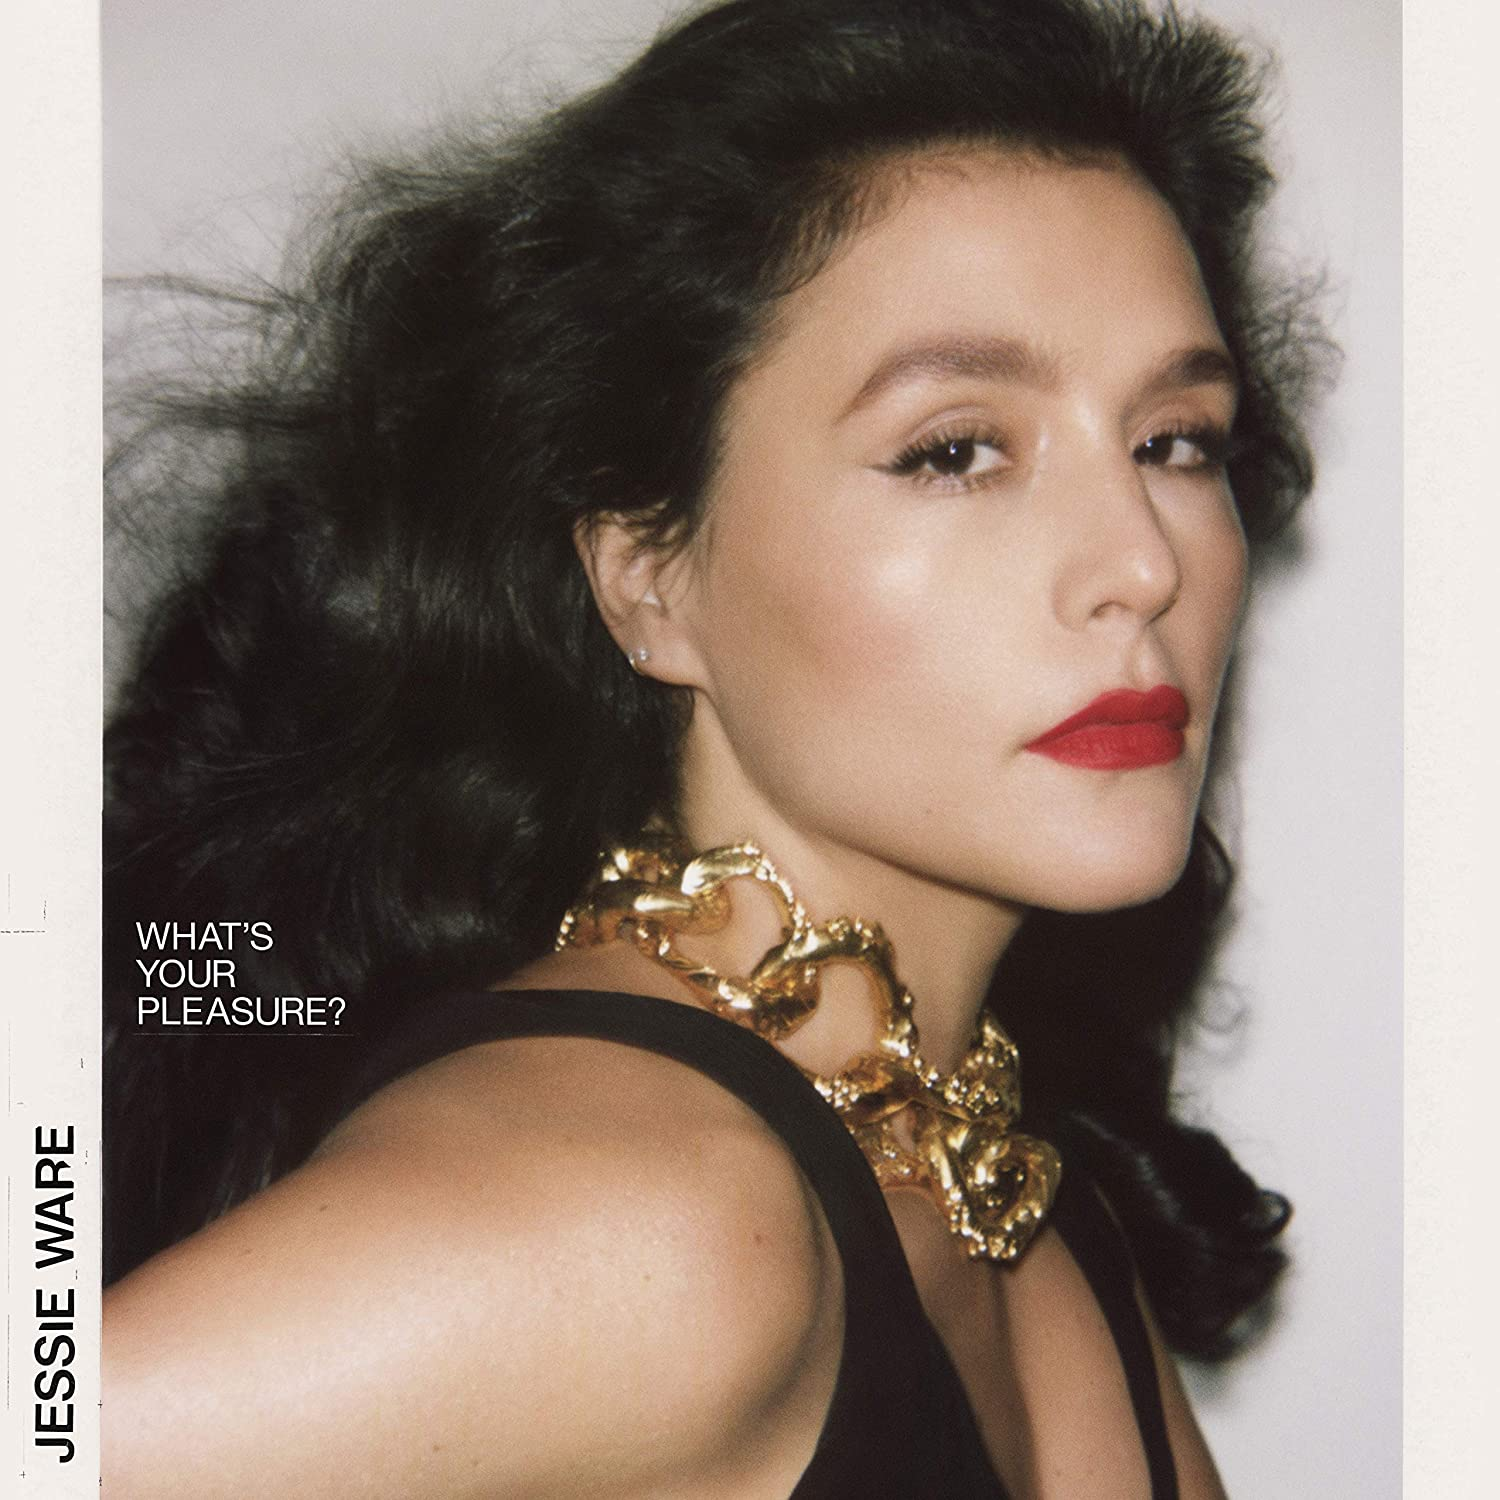 Jessie Ware - What's Your Pleasure? [LP]